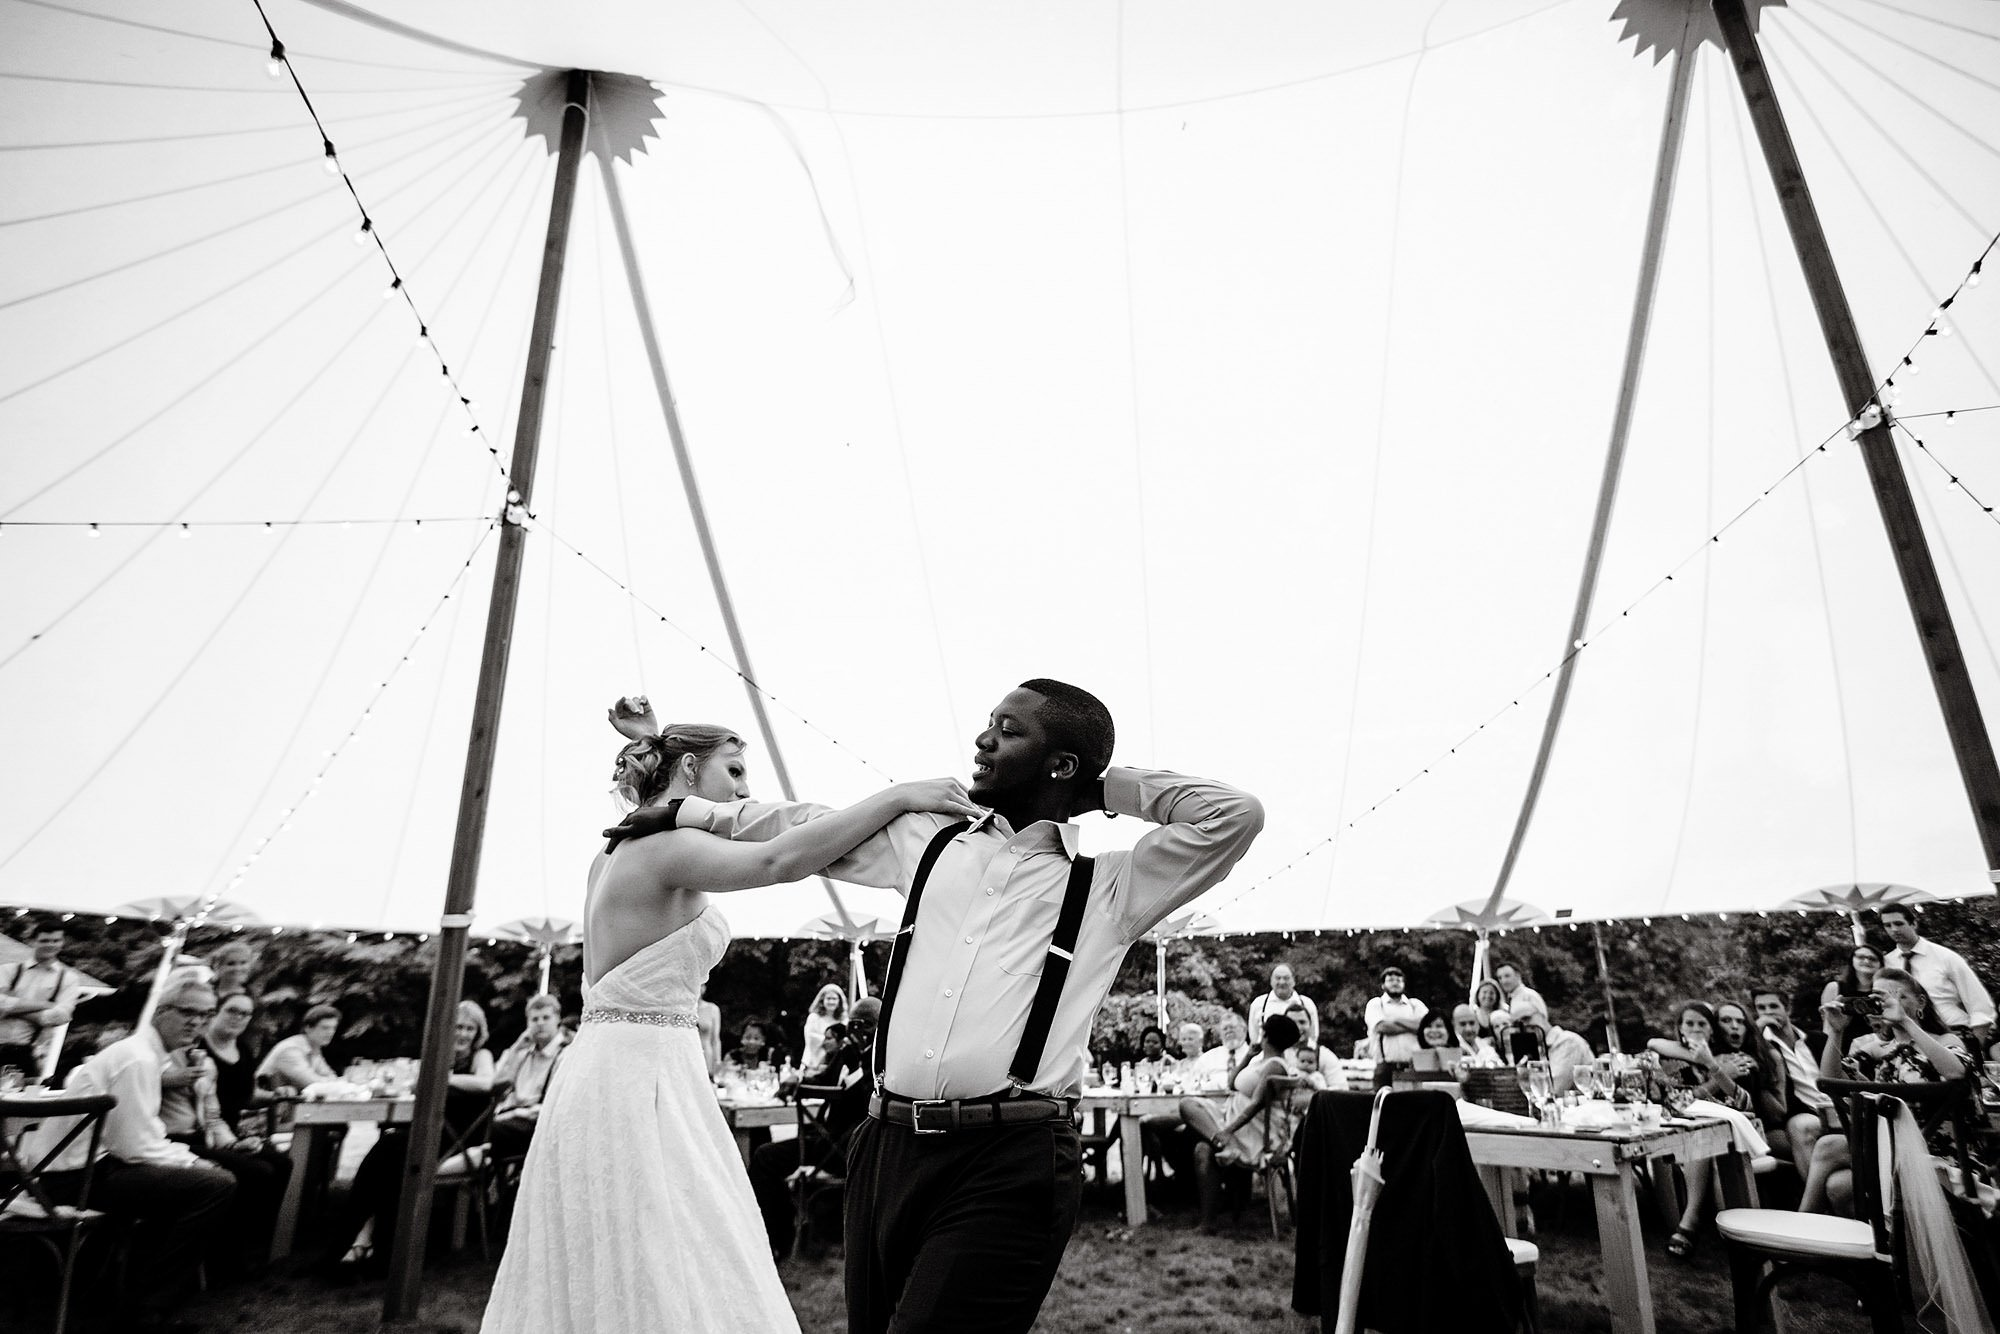 New Hampshire Backyard Wedding  I  The bride and groom dance during the tented wedding reception.